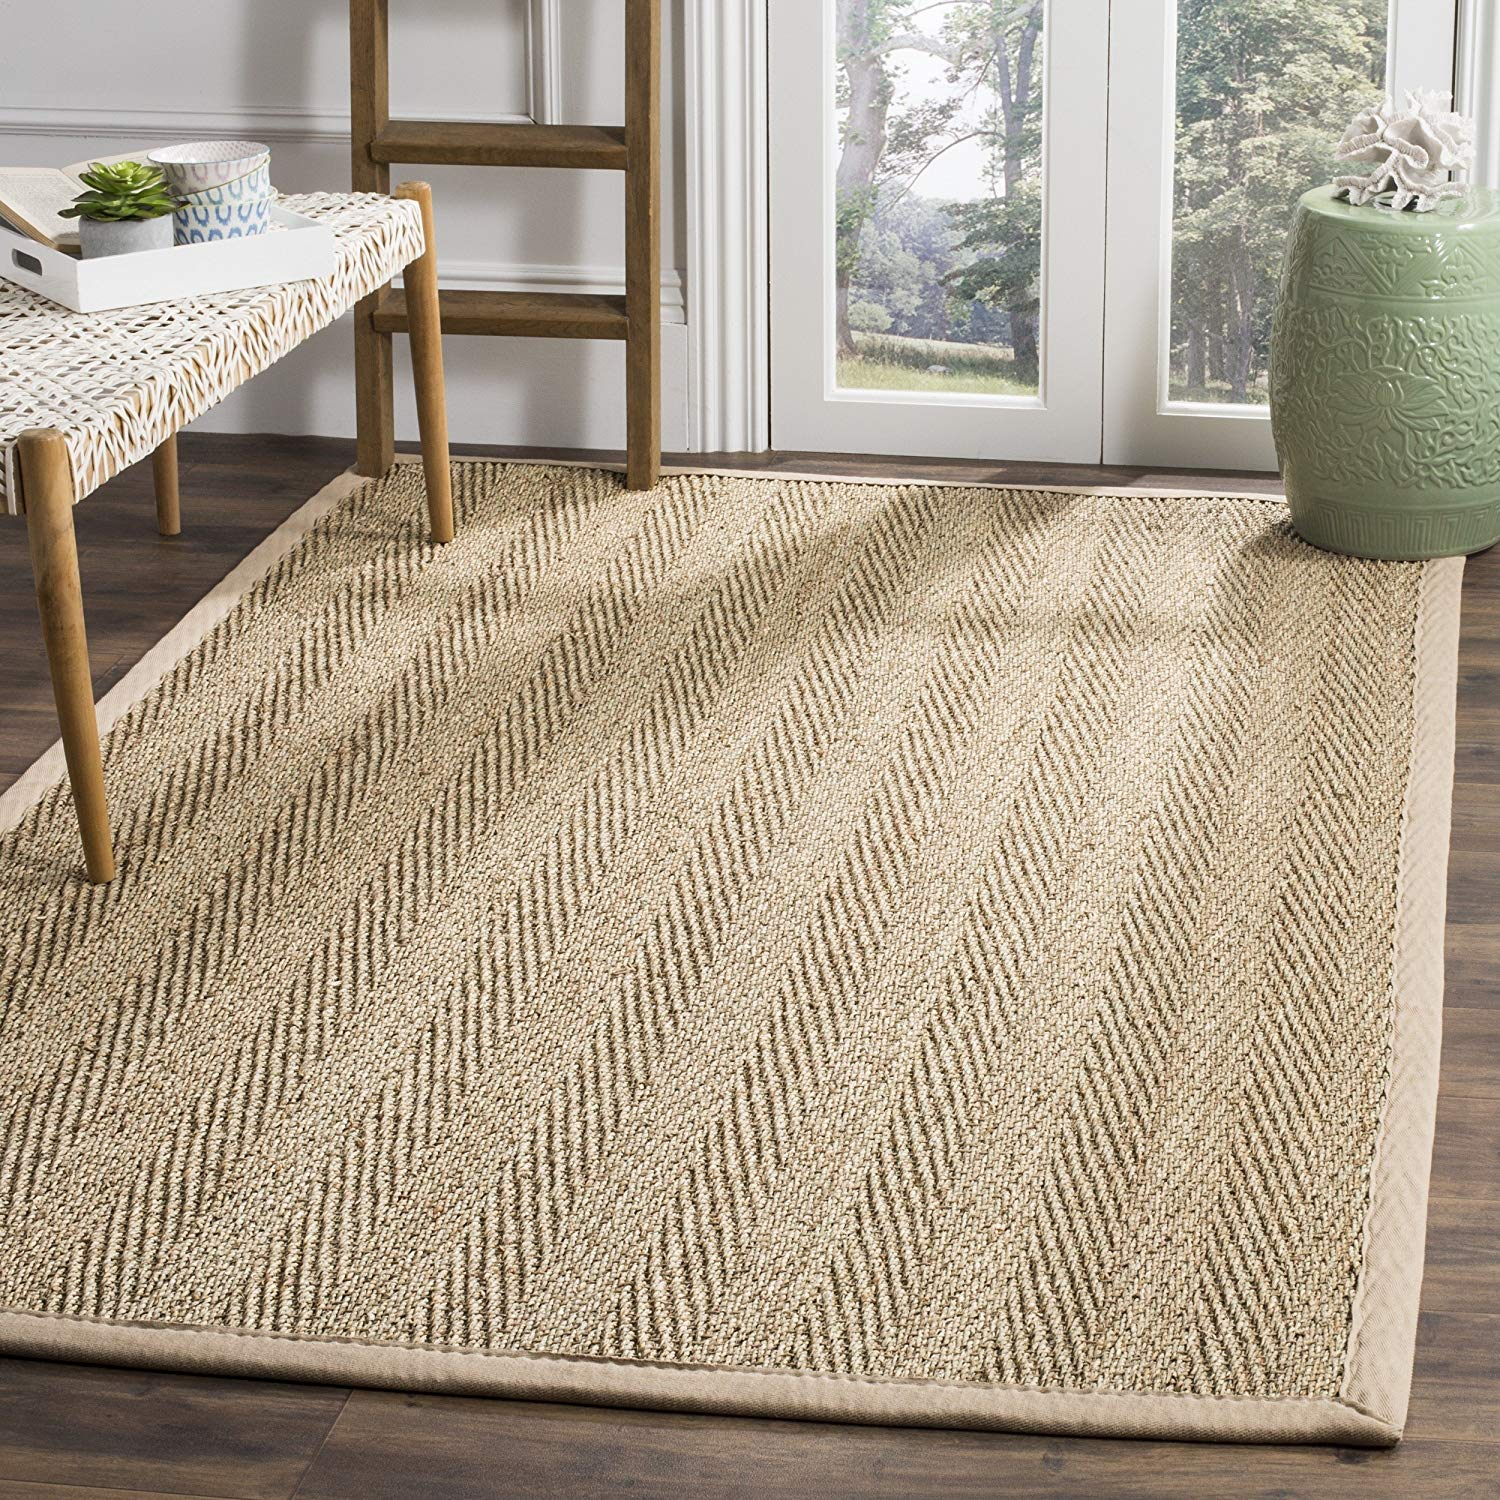 Top 10 Best Seagrass Rugs In 2020